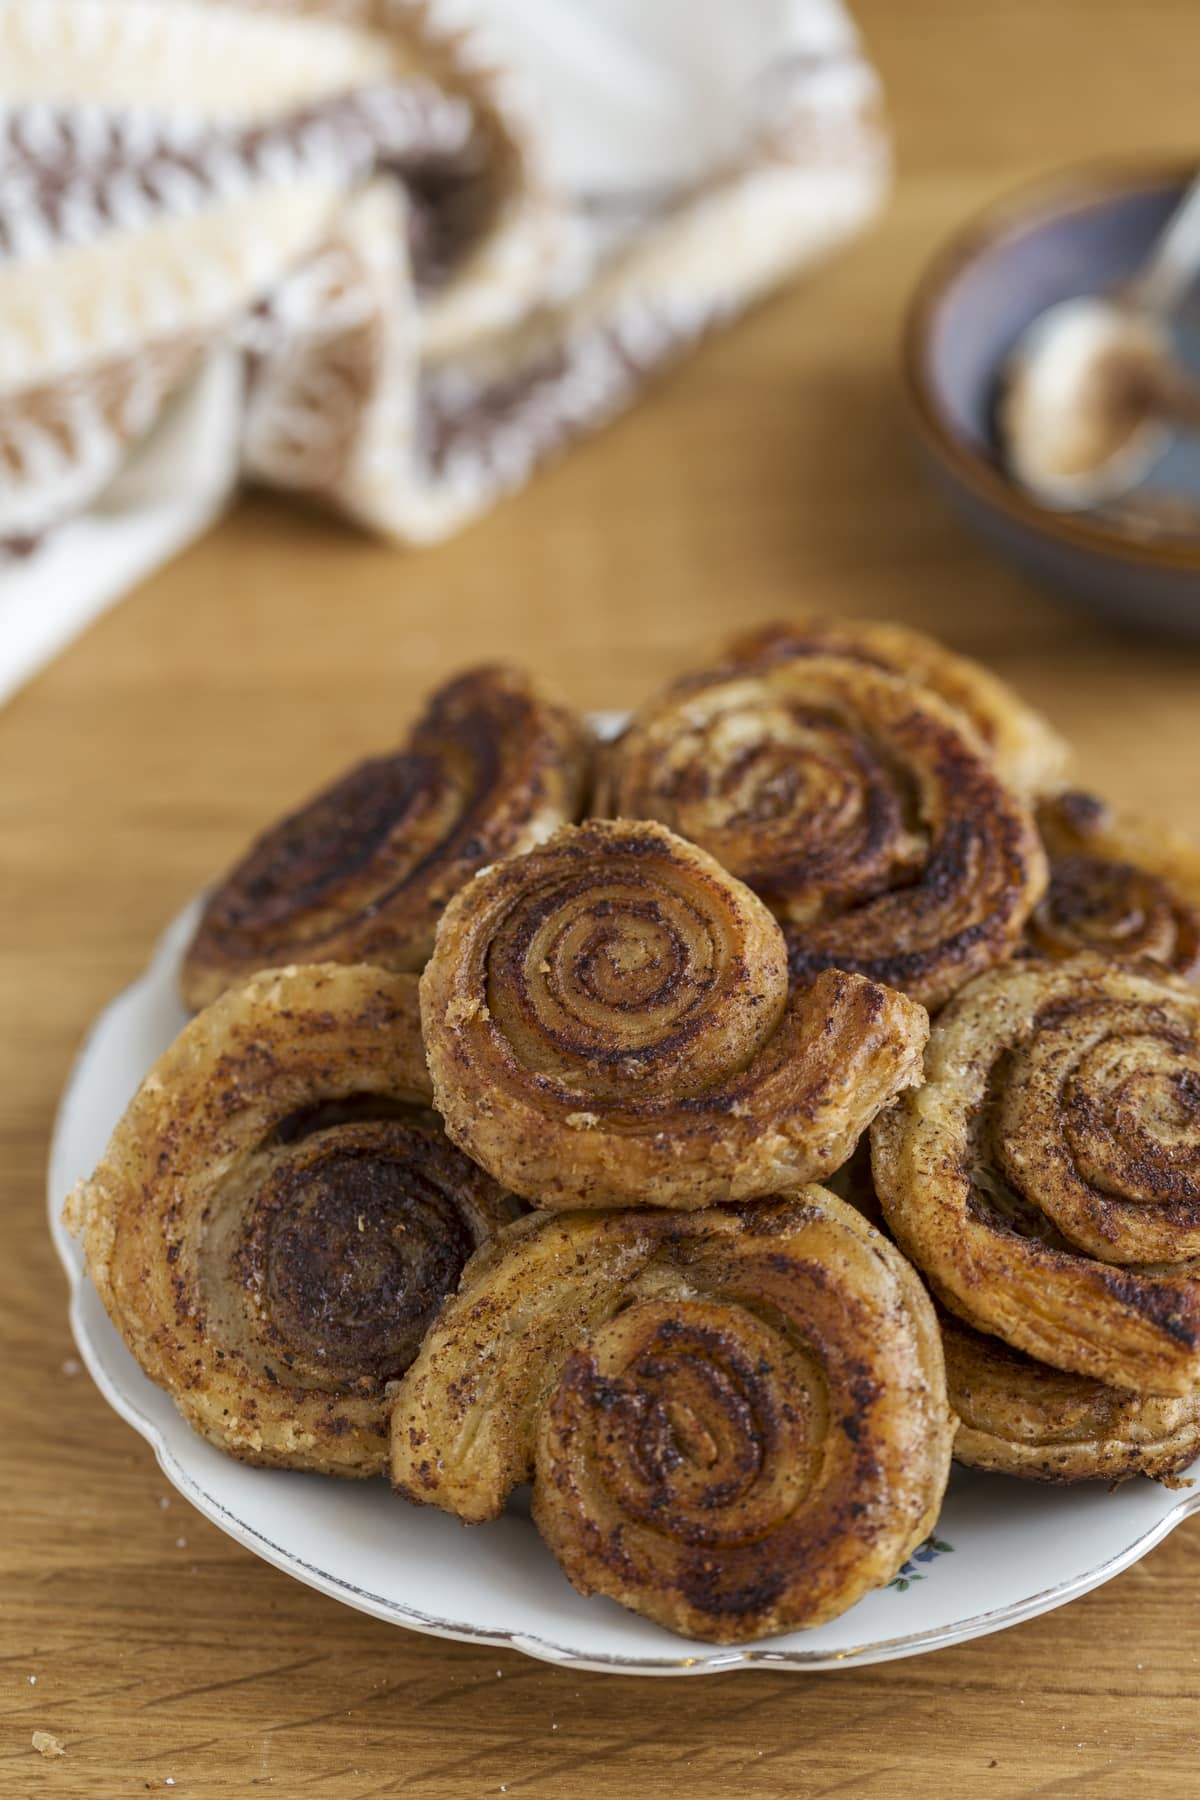 Cinnamon pinwheels piled on a serving plate.